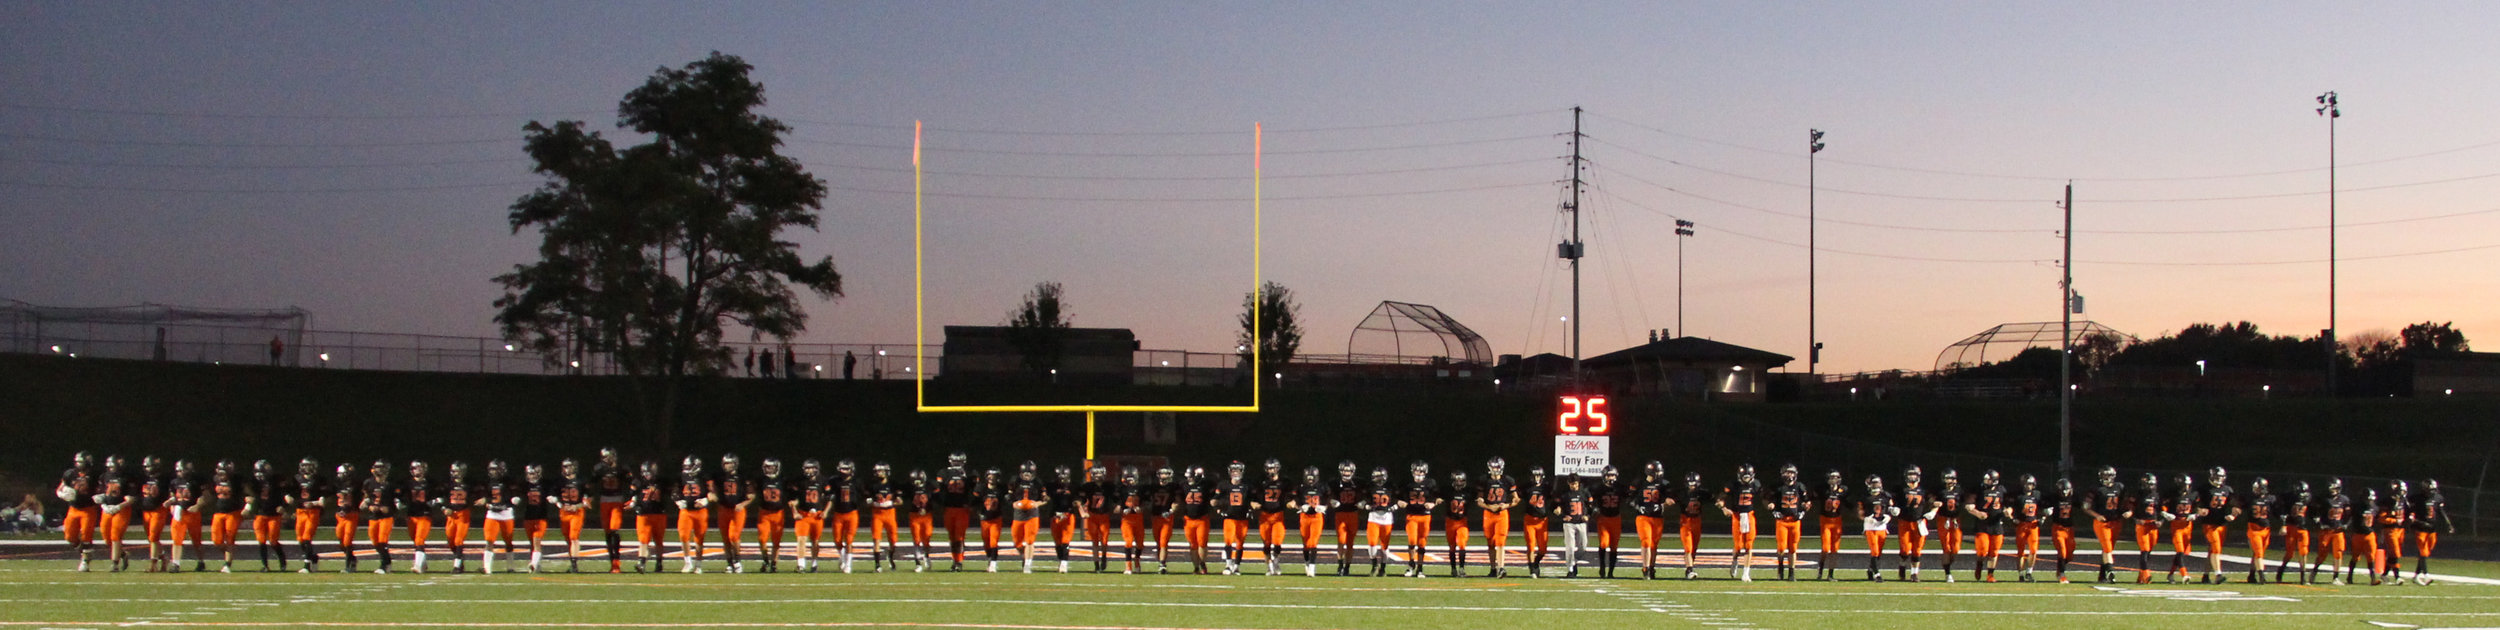 ROSS MARTIN/Citizen photo Platte County's football players took the field in a line with arms interlocked prior to the Class 4 District 8 opener with Winnetonka on Friday, Oct. 21 at Pirate Stadium.